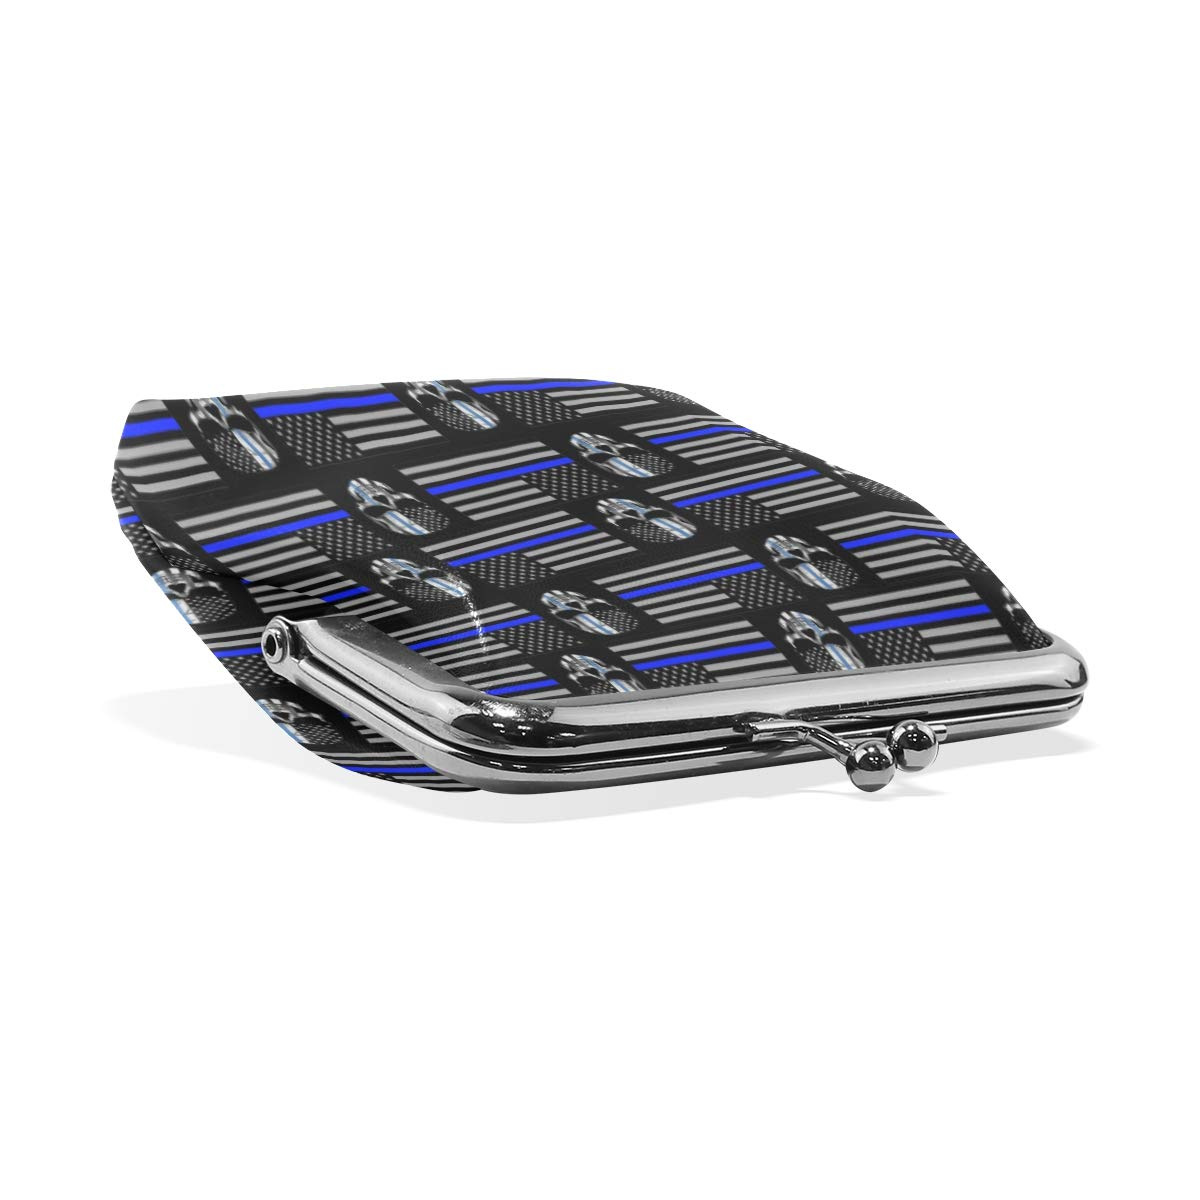 American Flag Thin Blue Line Coin Purse Buckle Vintage PU Pouch Kiss-lock Wallet for Women Girl